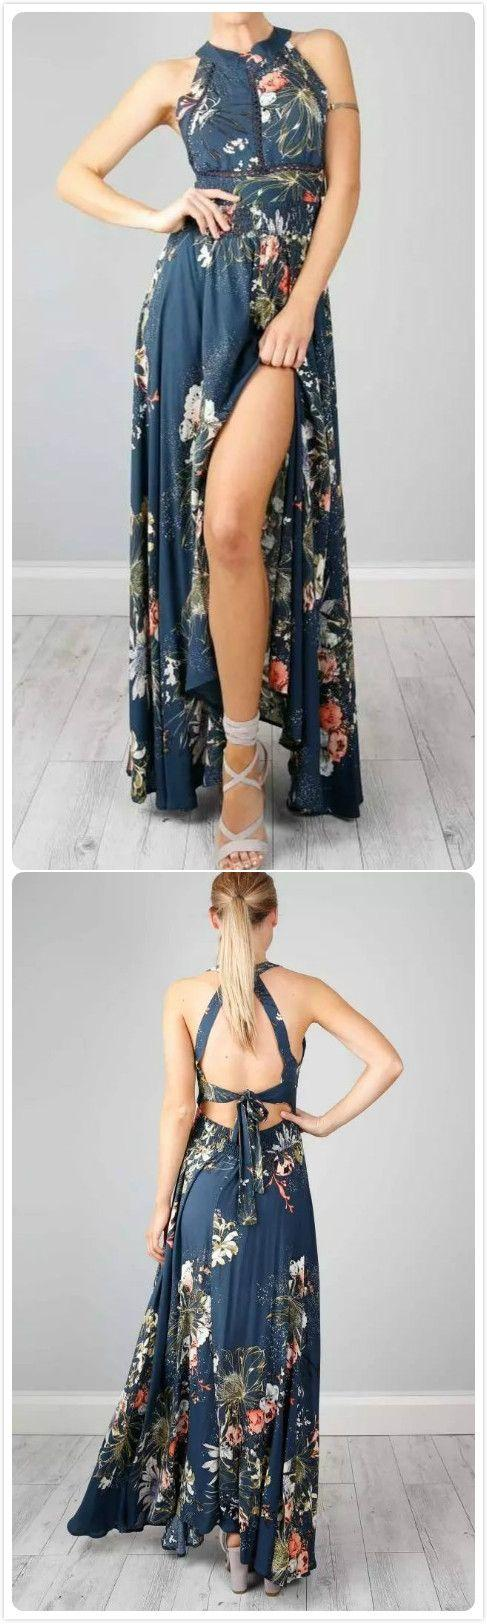 Mariage - Halter Backless Floral Printed Maxi Dress - AZBRO.com